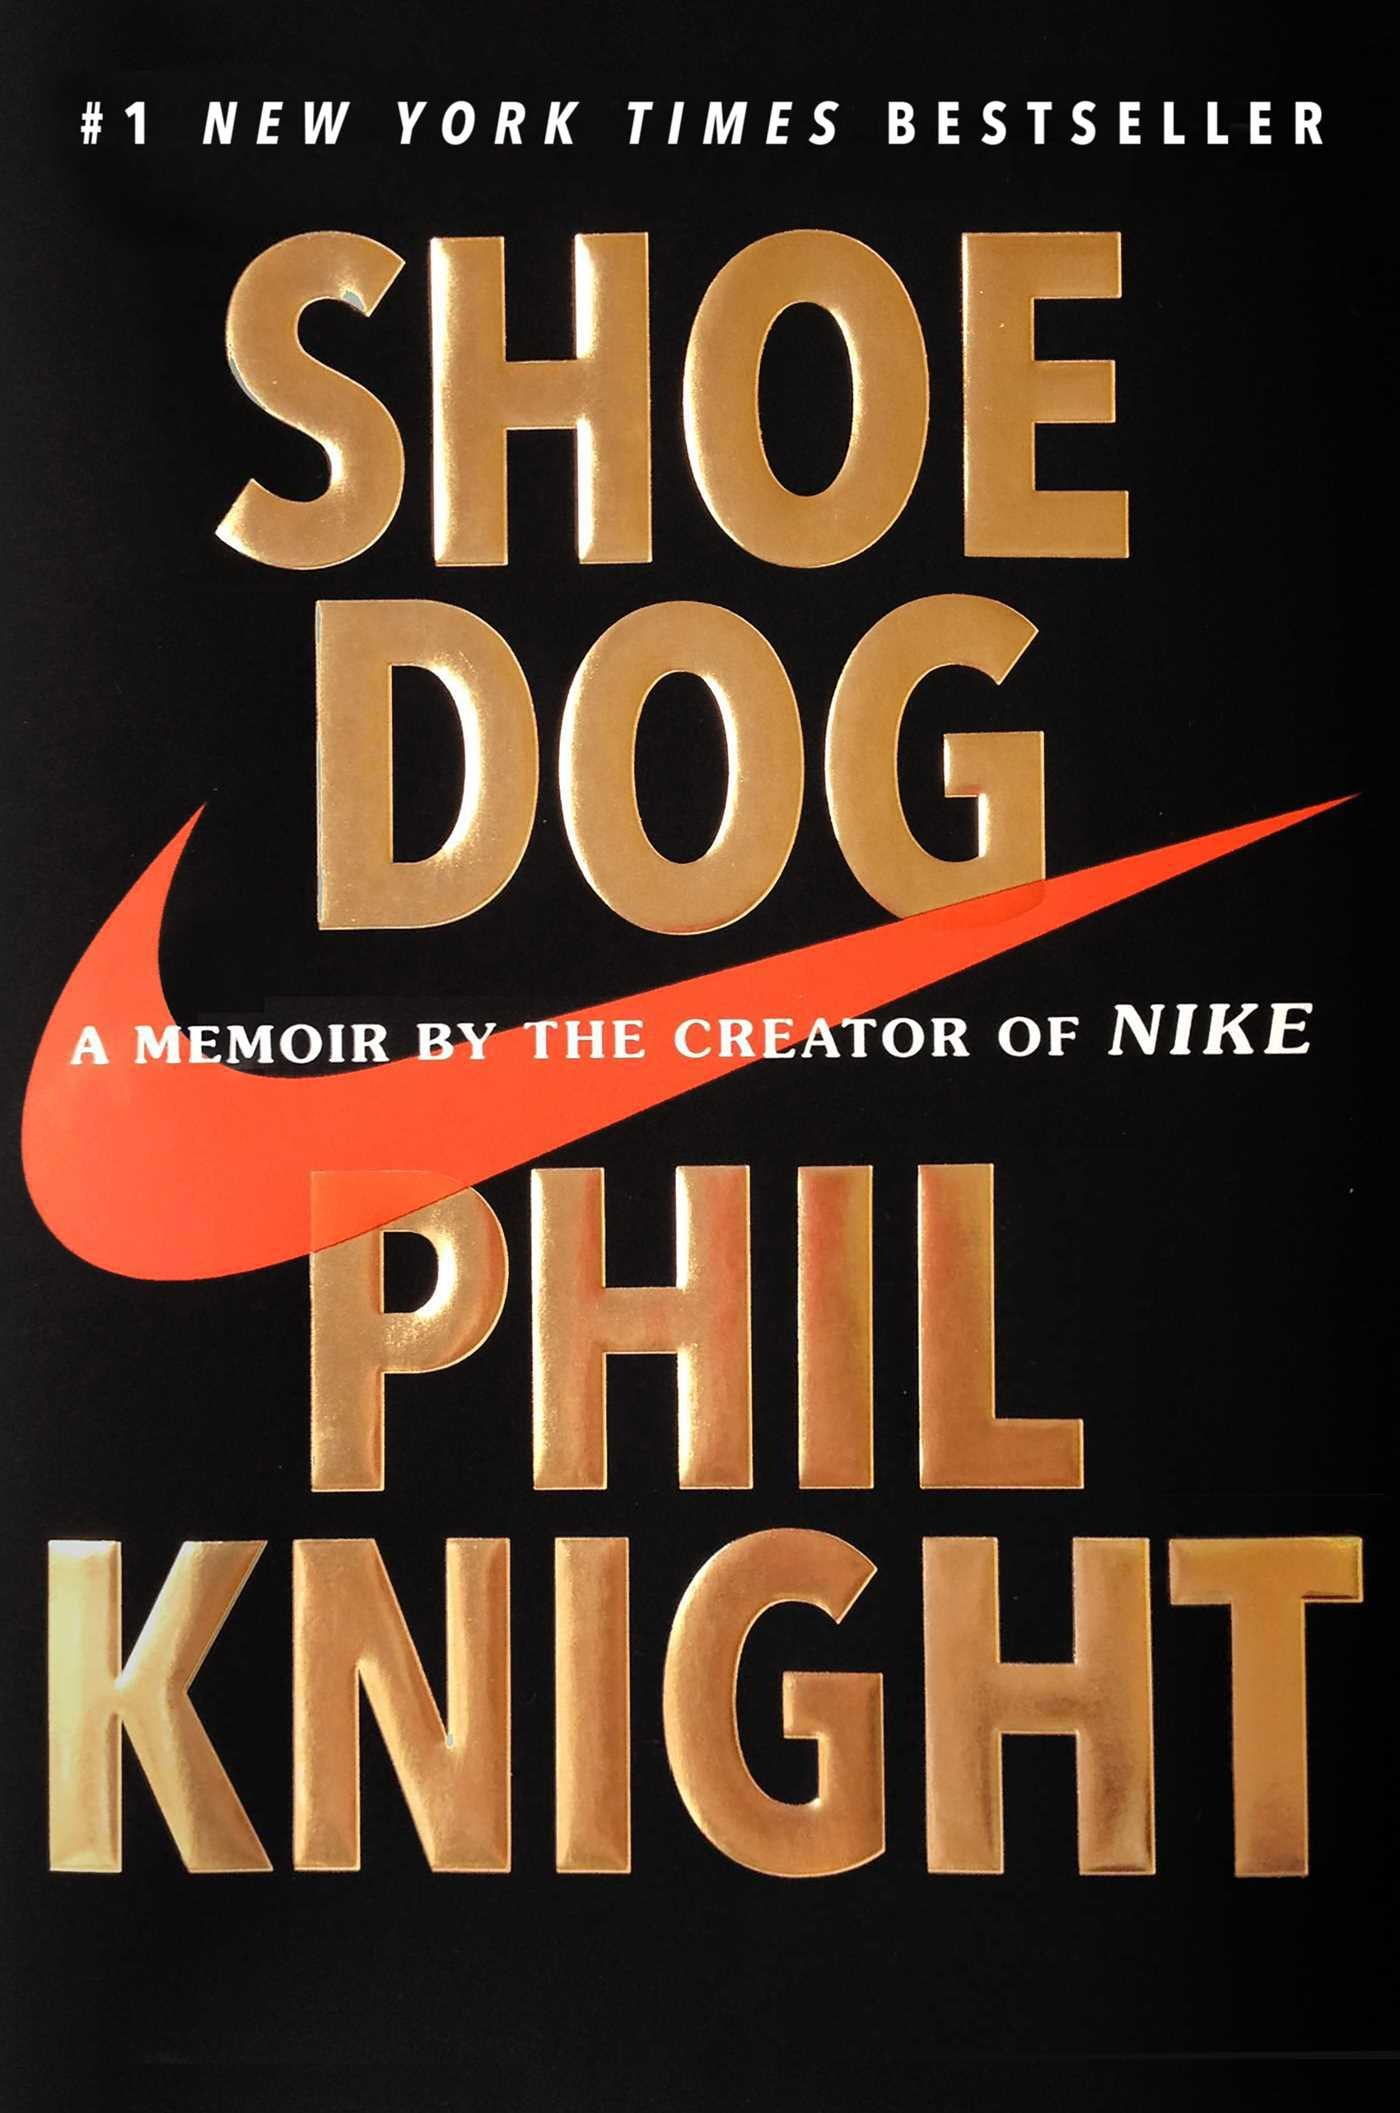 shoe dog a memoir by the creator of nike phil knight shoe dog a memoir by the creator of nike phil knight 9781501135910 books ca